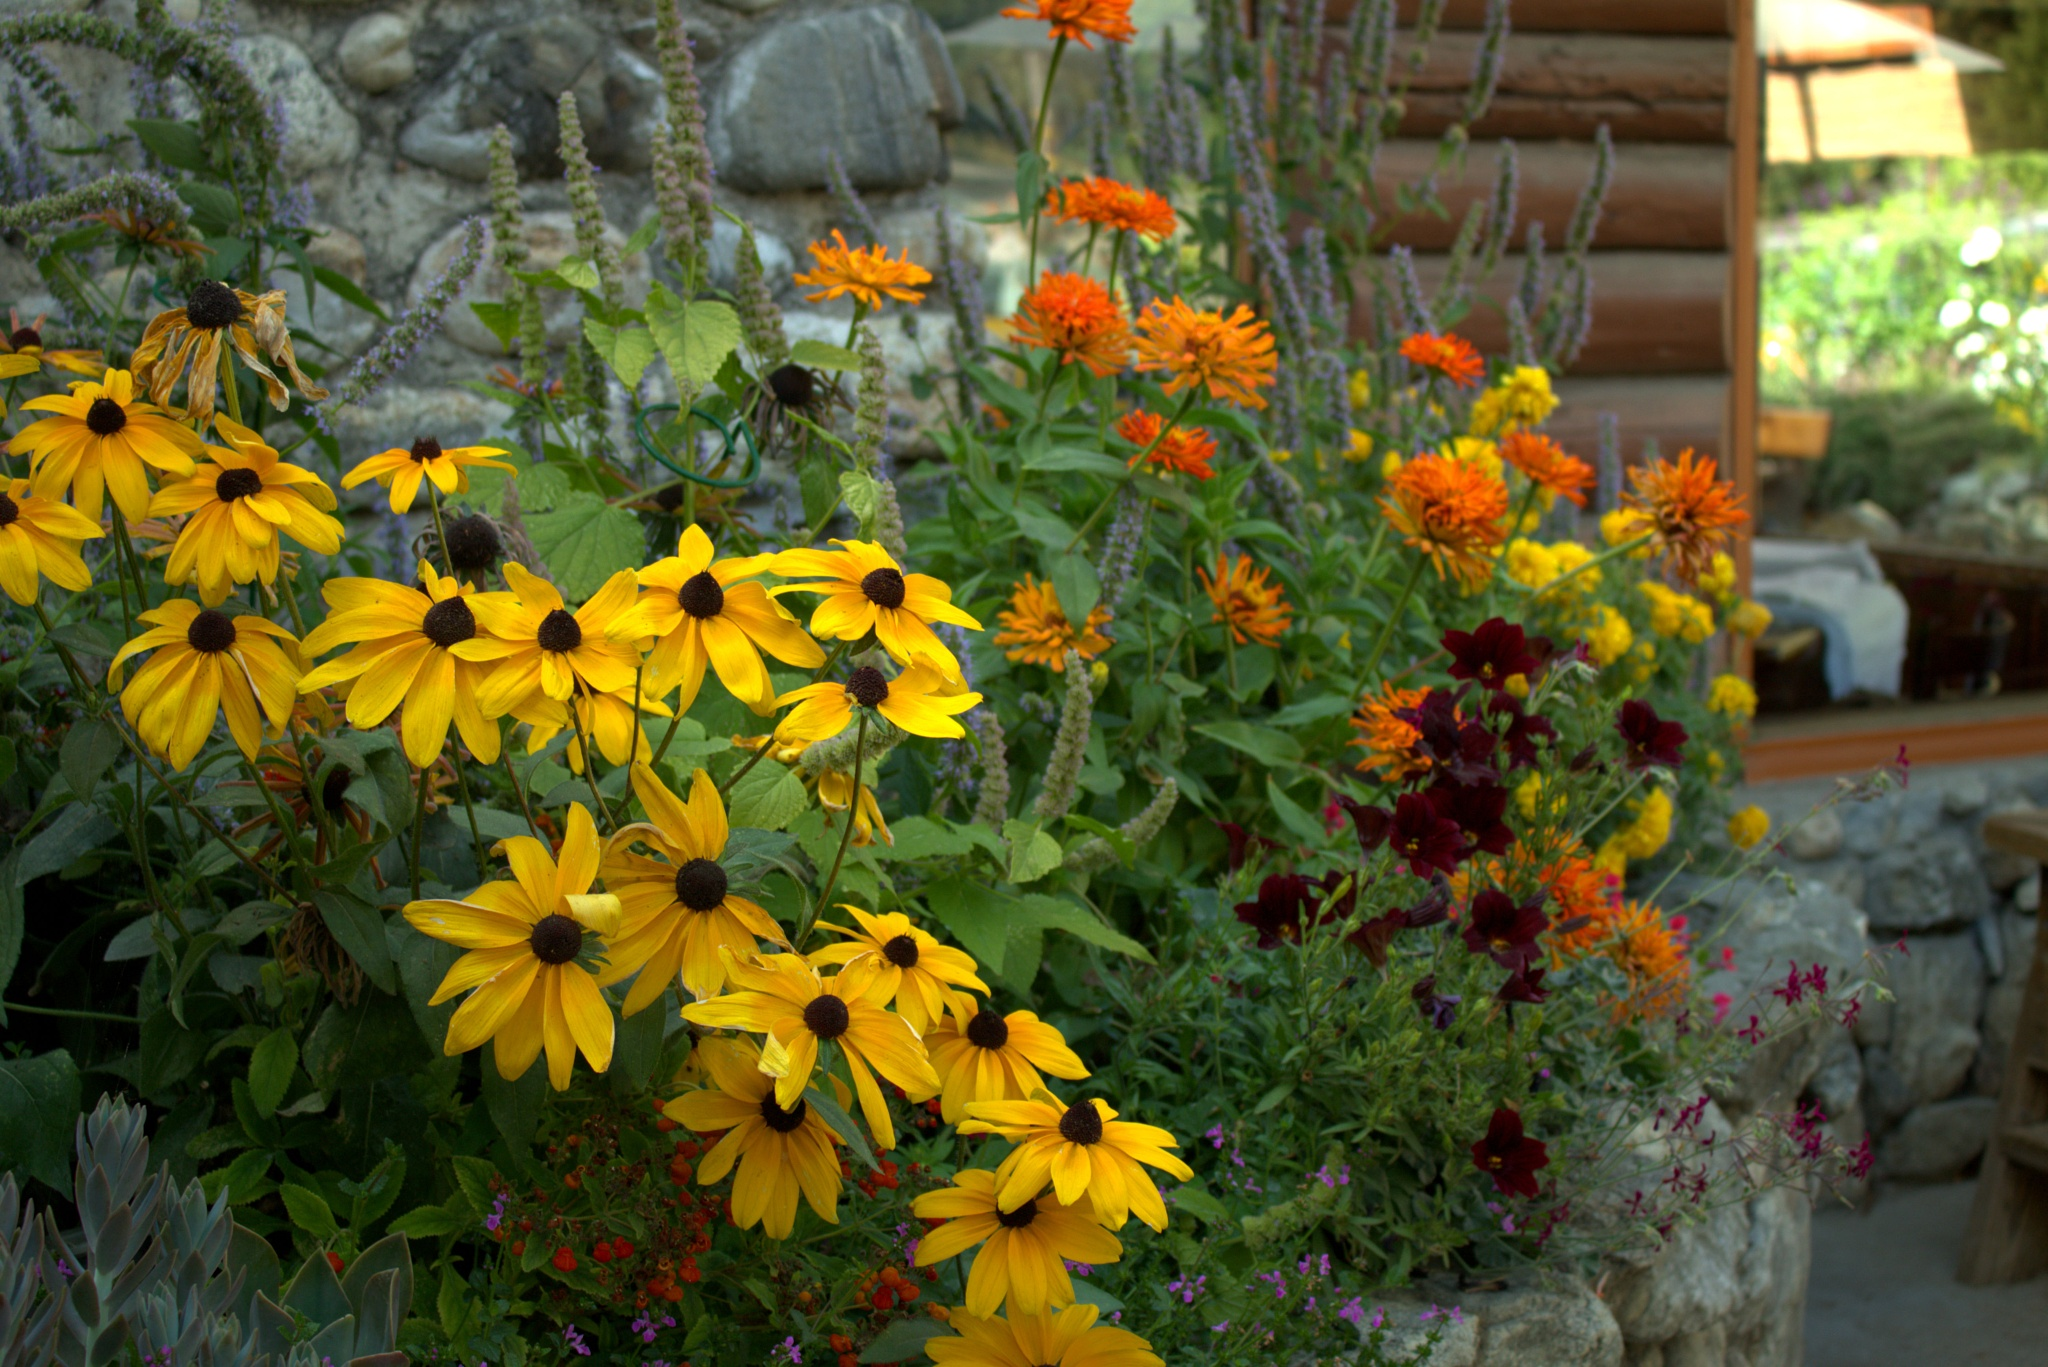 Late Summer Blooms by M.ErinSmith